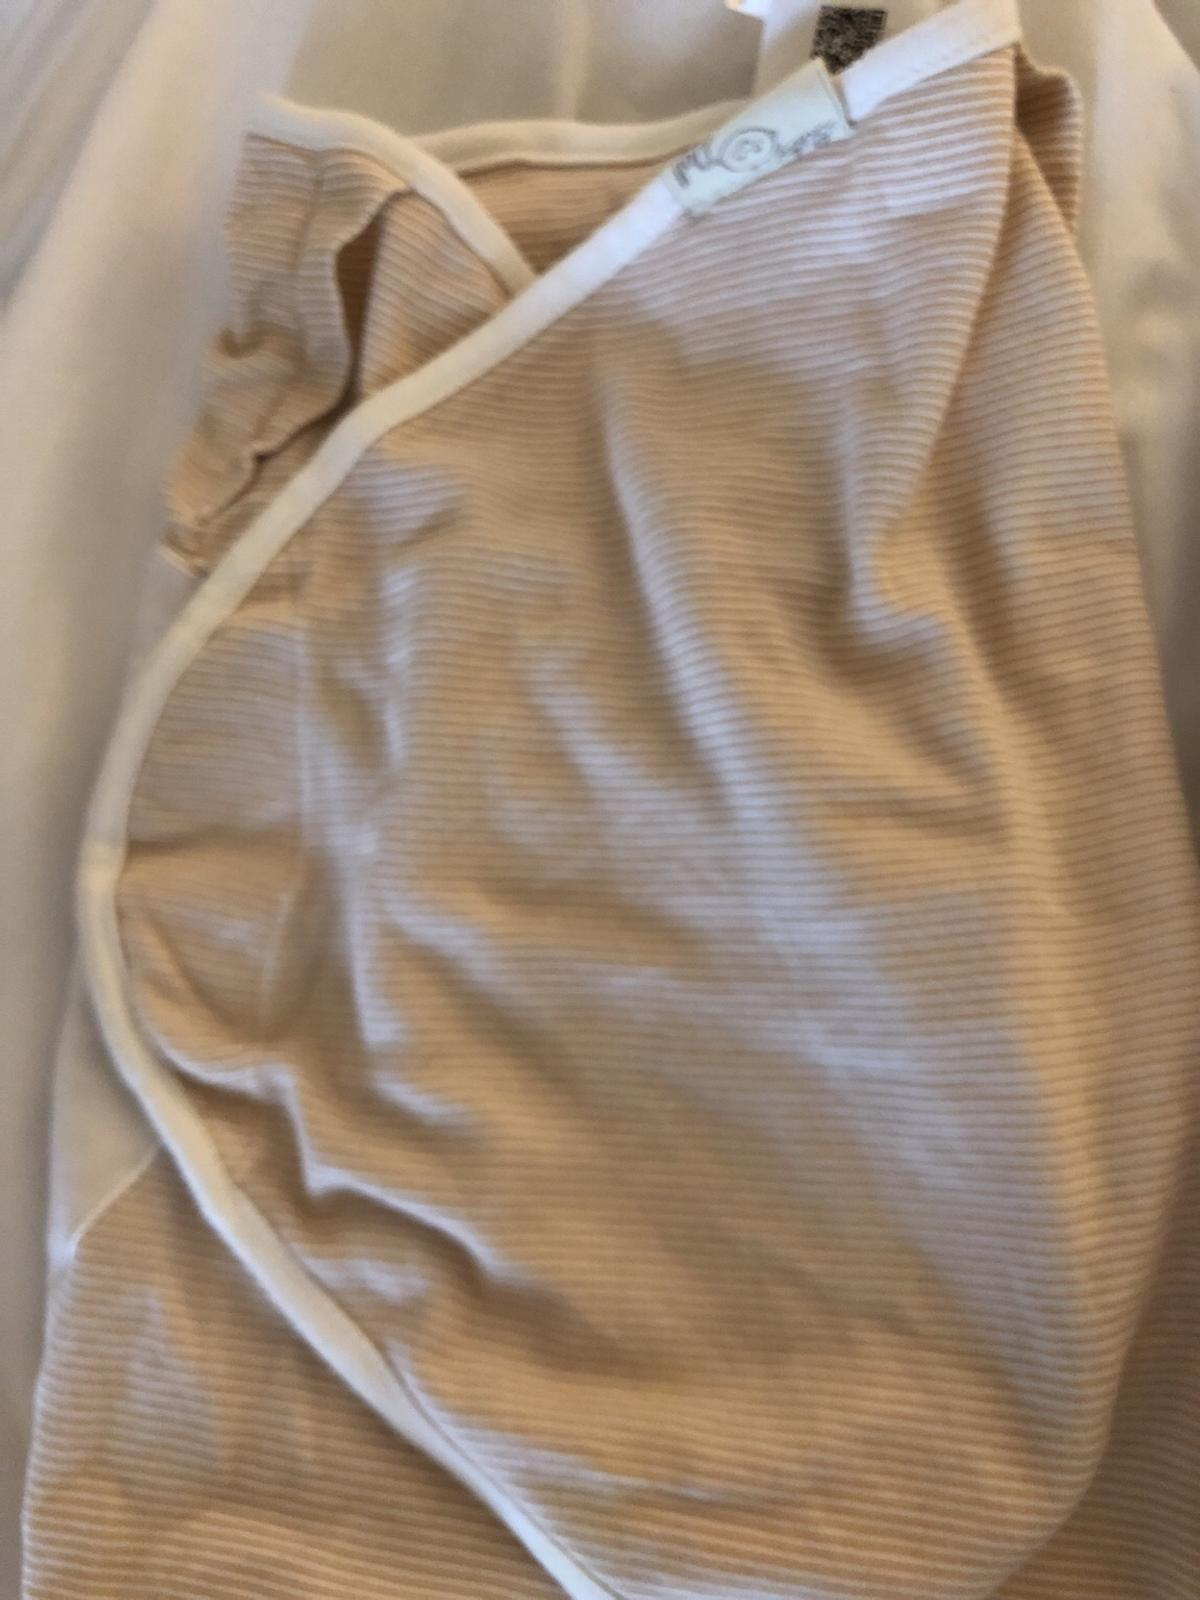 2x newborn swaddle blankets in very good condition. Thin and soft cotton material, perfect for newborns.  From a pet and smoke free home.